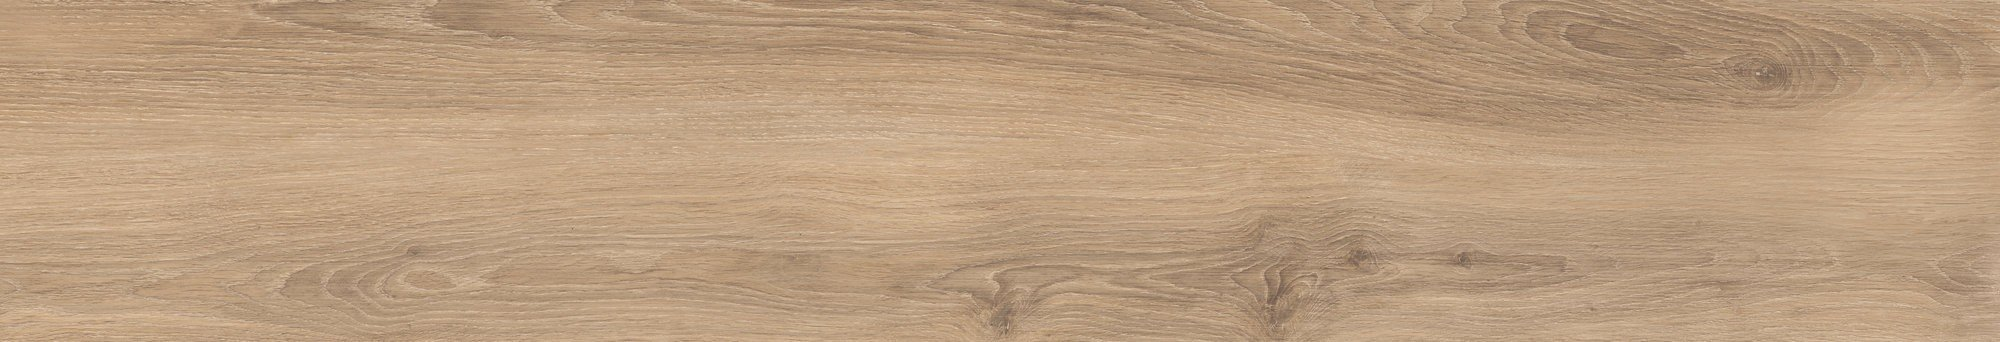 ABK ECO CHIC Naturale 20 mm